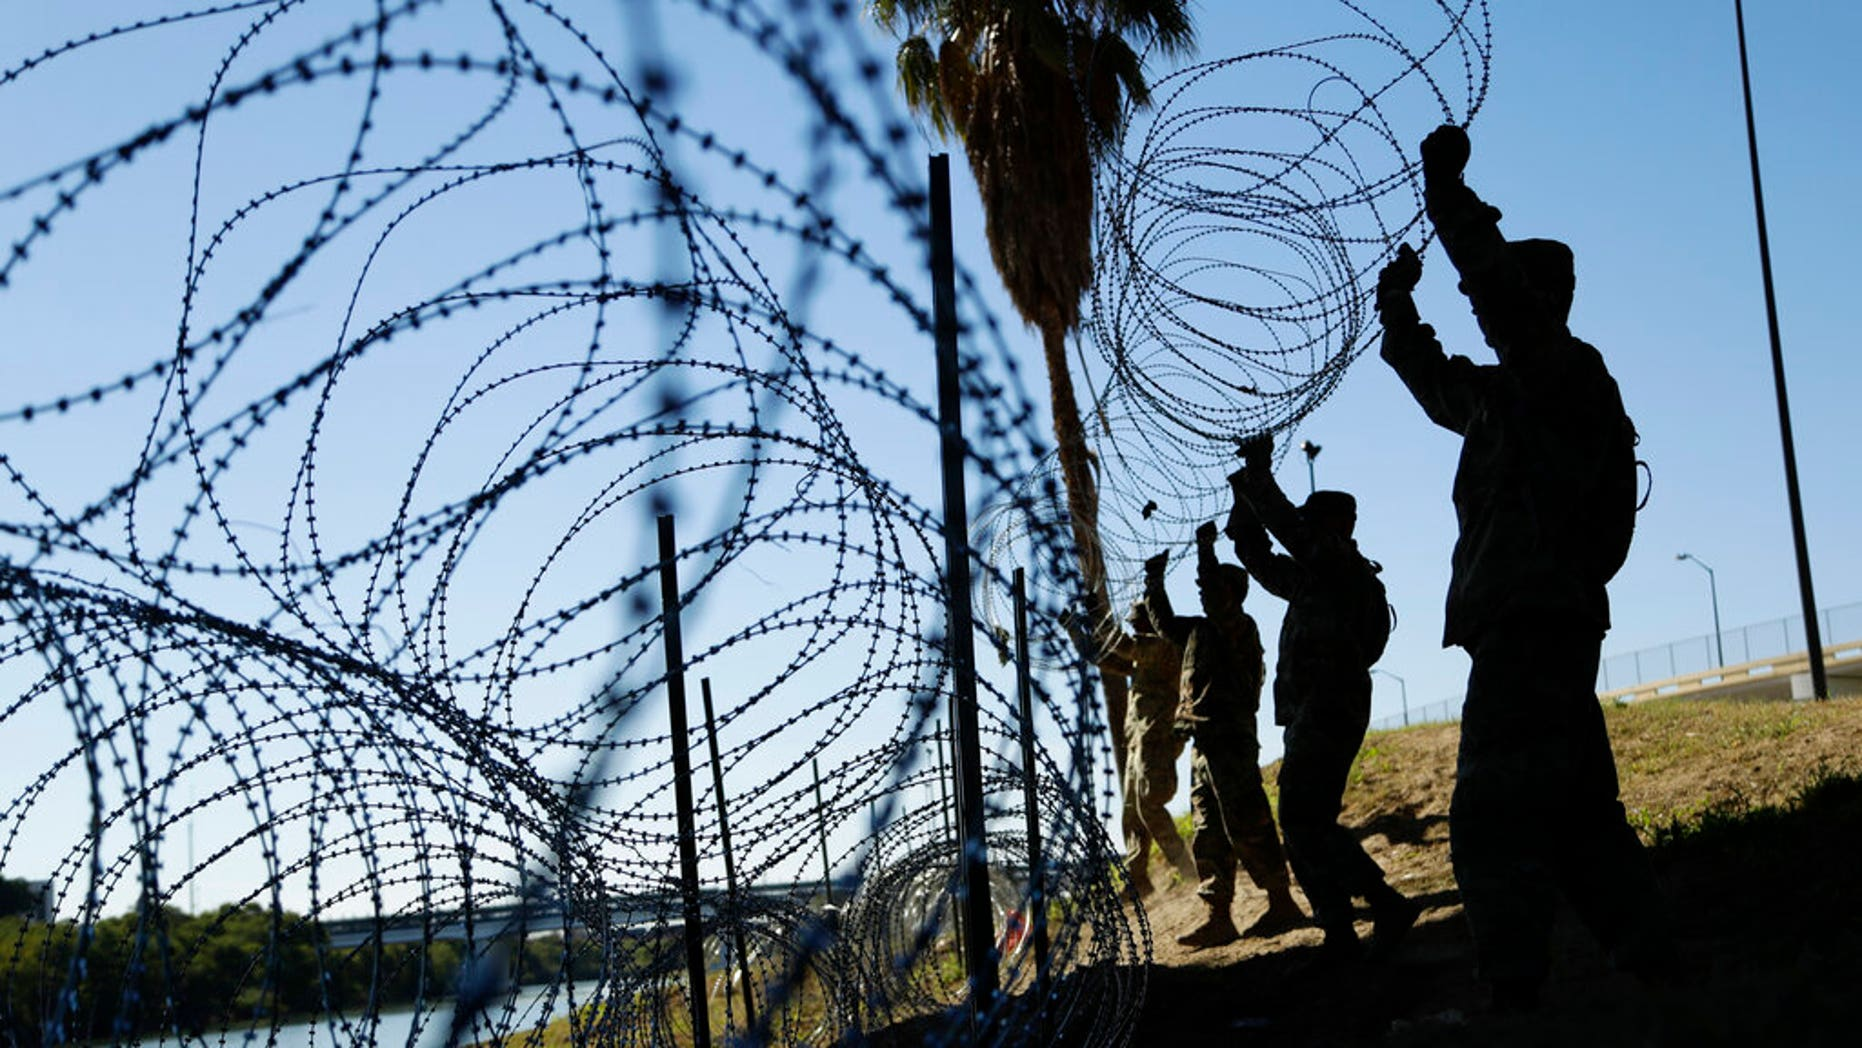 In this Nov. 16, 2018, file photo, members of the U.S. military install multiple tiers of concertina wire along the banks of the Rio Grande near the Juarez-Lincoln Bridge at the U.S.-Mexico border in Laredo, Texas.  (AP Photo/Eric Gay, File)